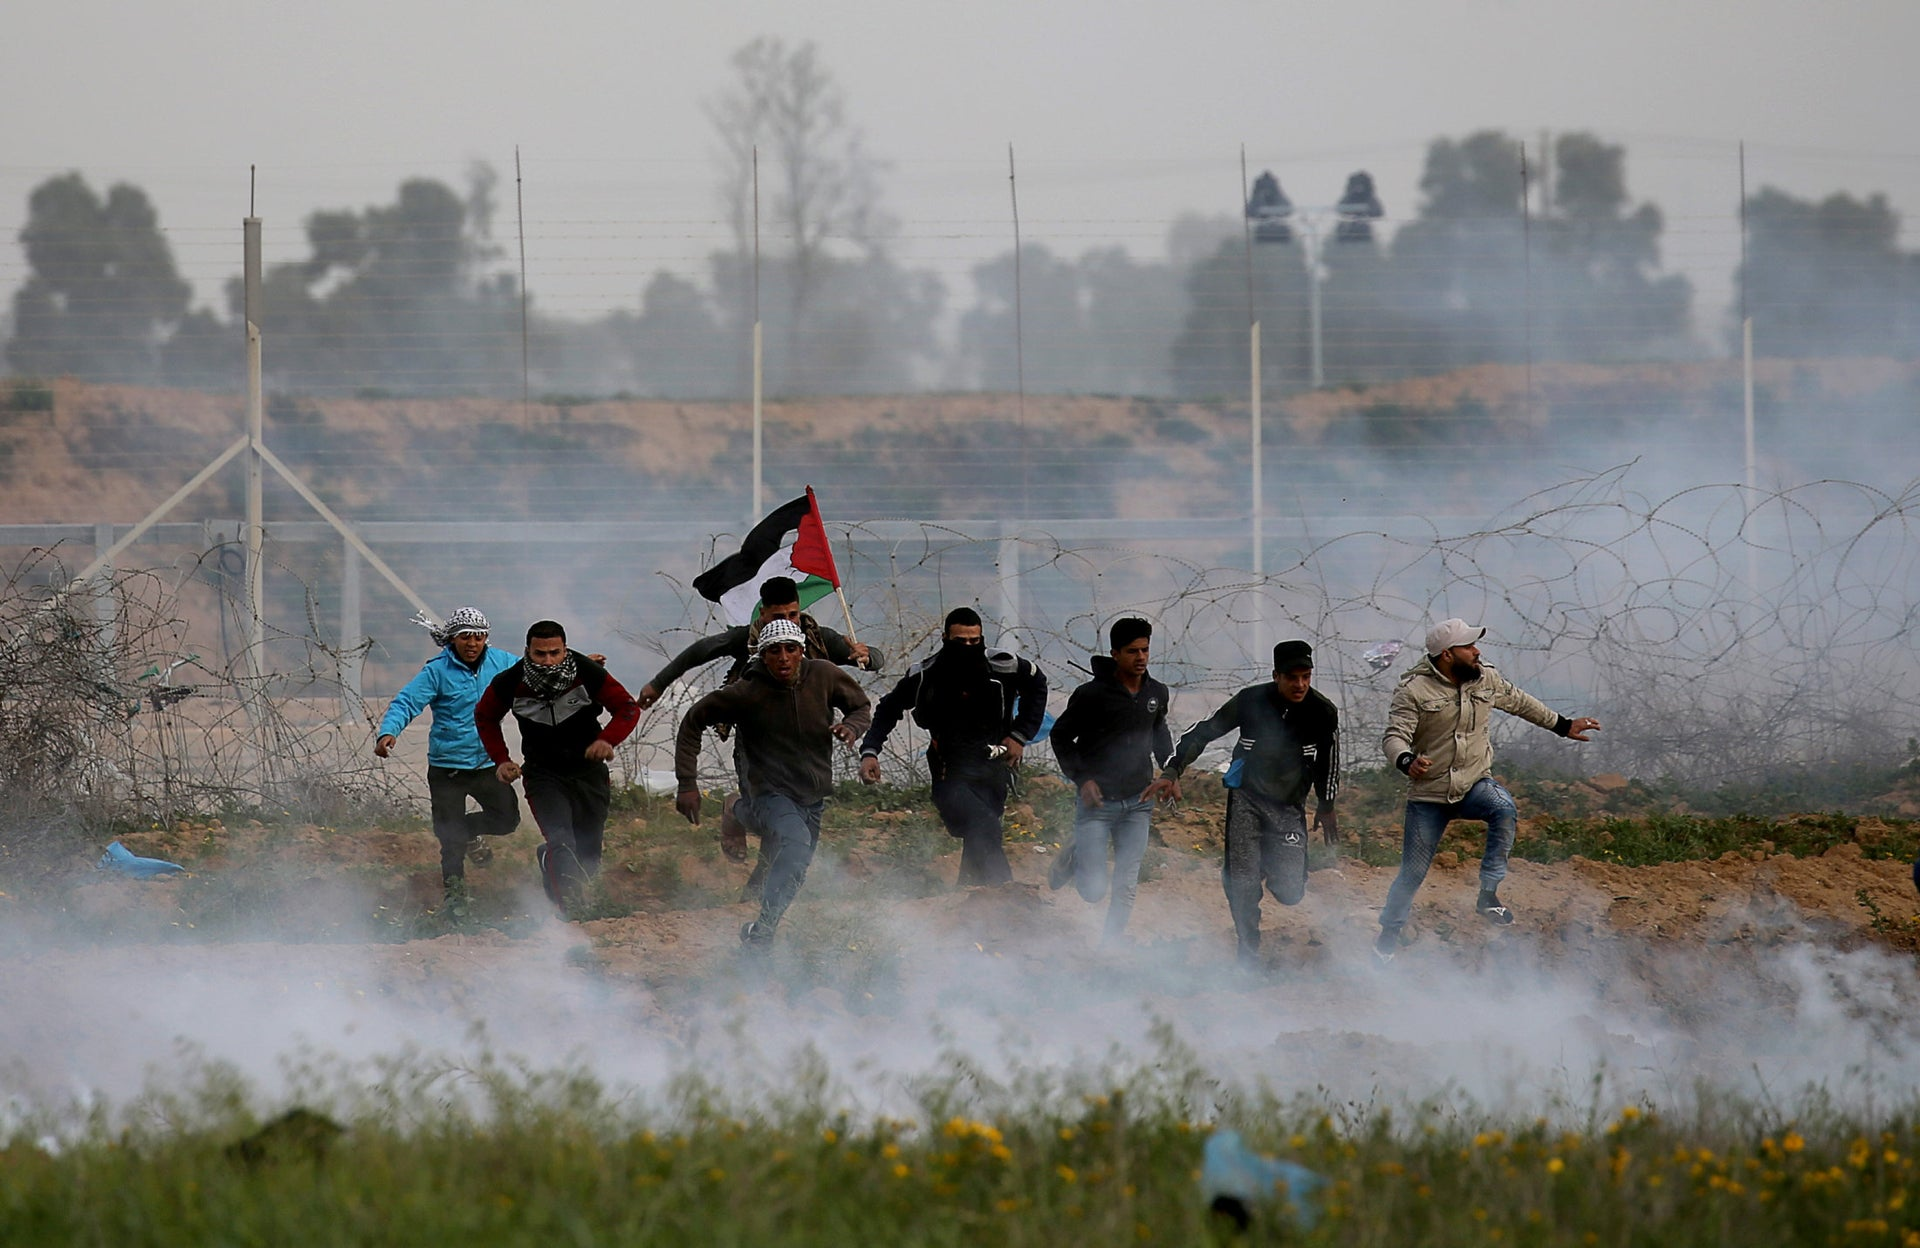 Palestinian demonstrators run away from Israeli fire and tear gas during a protest at the border fence in the southern Gaza Strip, February 15, 2019.